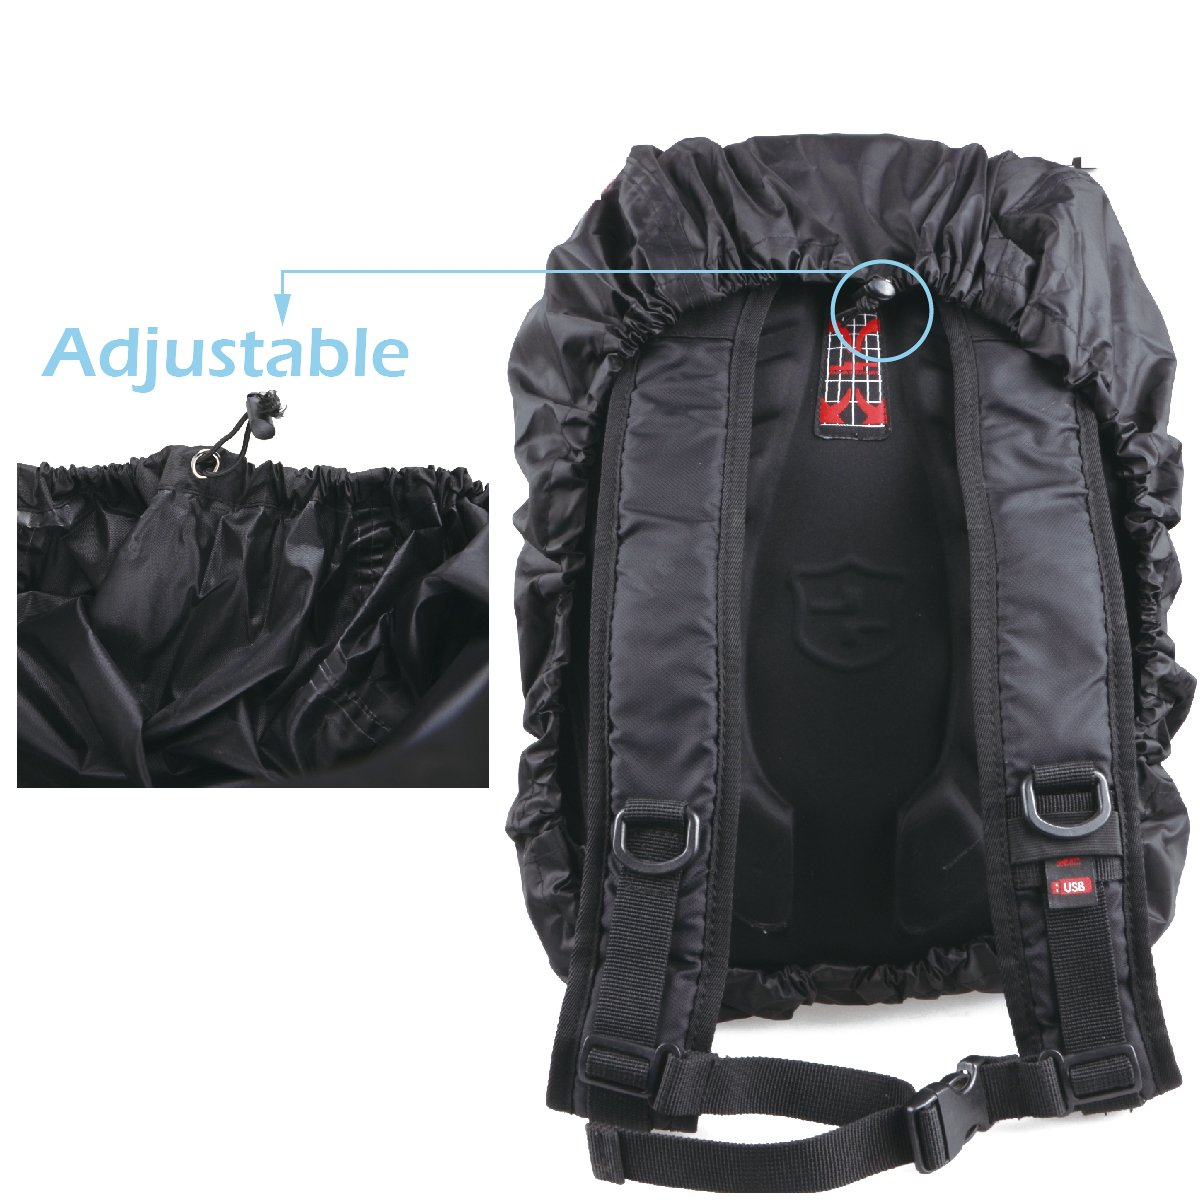 TRIWONDER Waterproof Storage Backpack Rain Cover Pack Cover for Hiking Camping Traveling OS1605